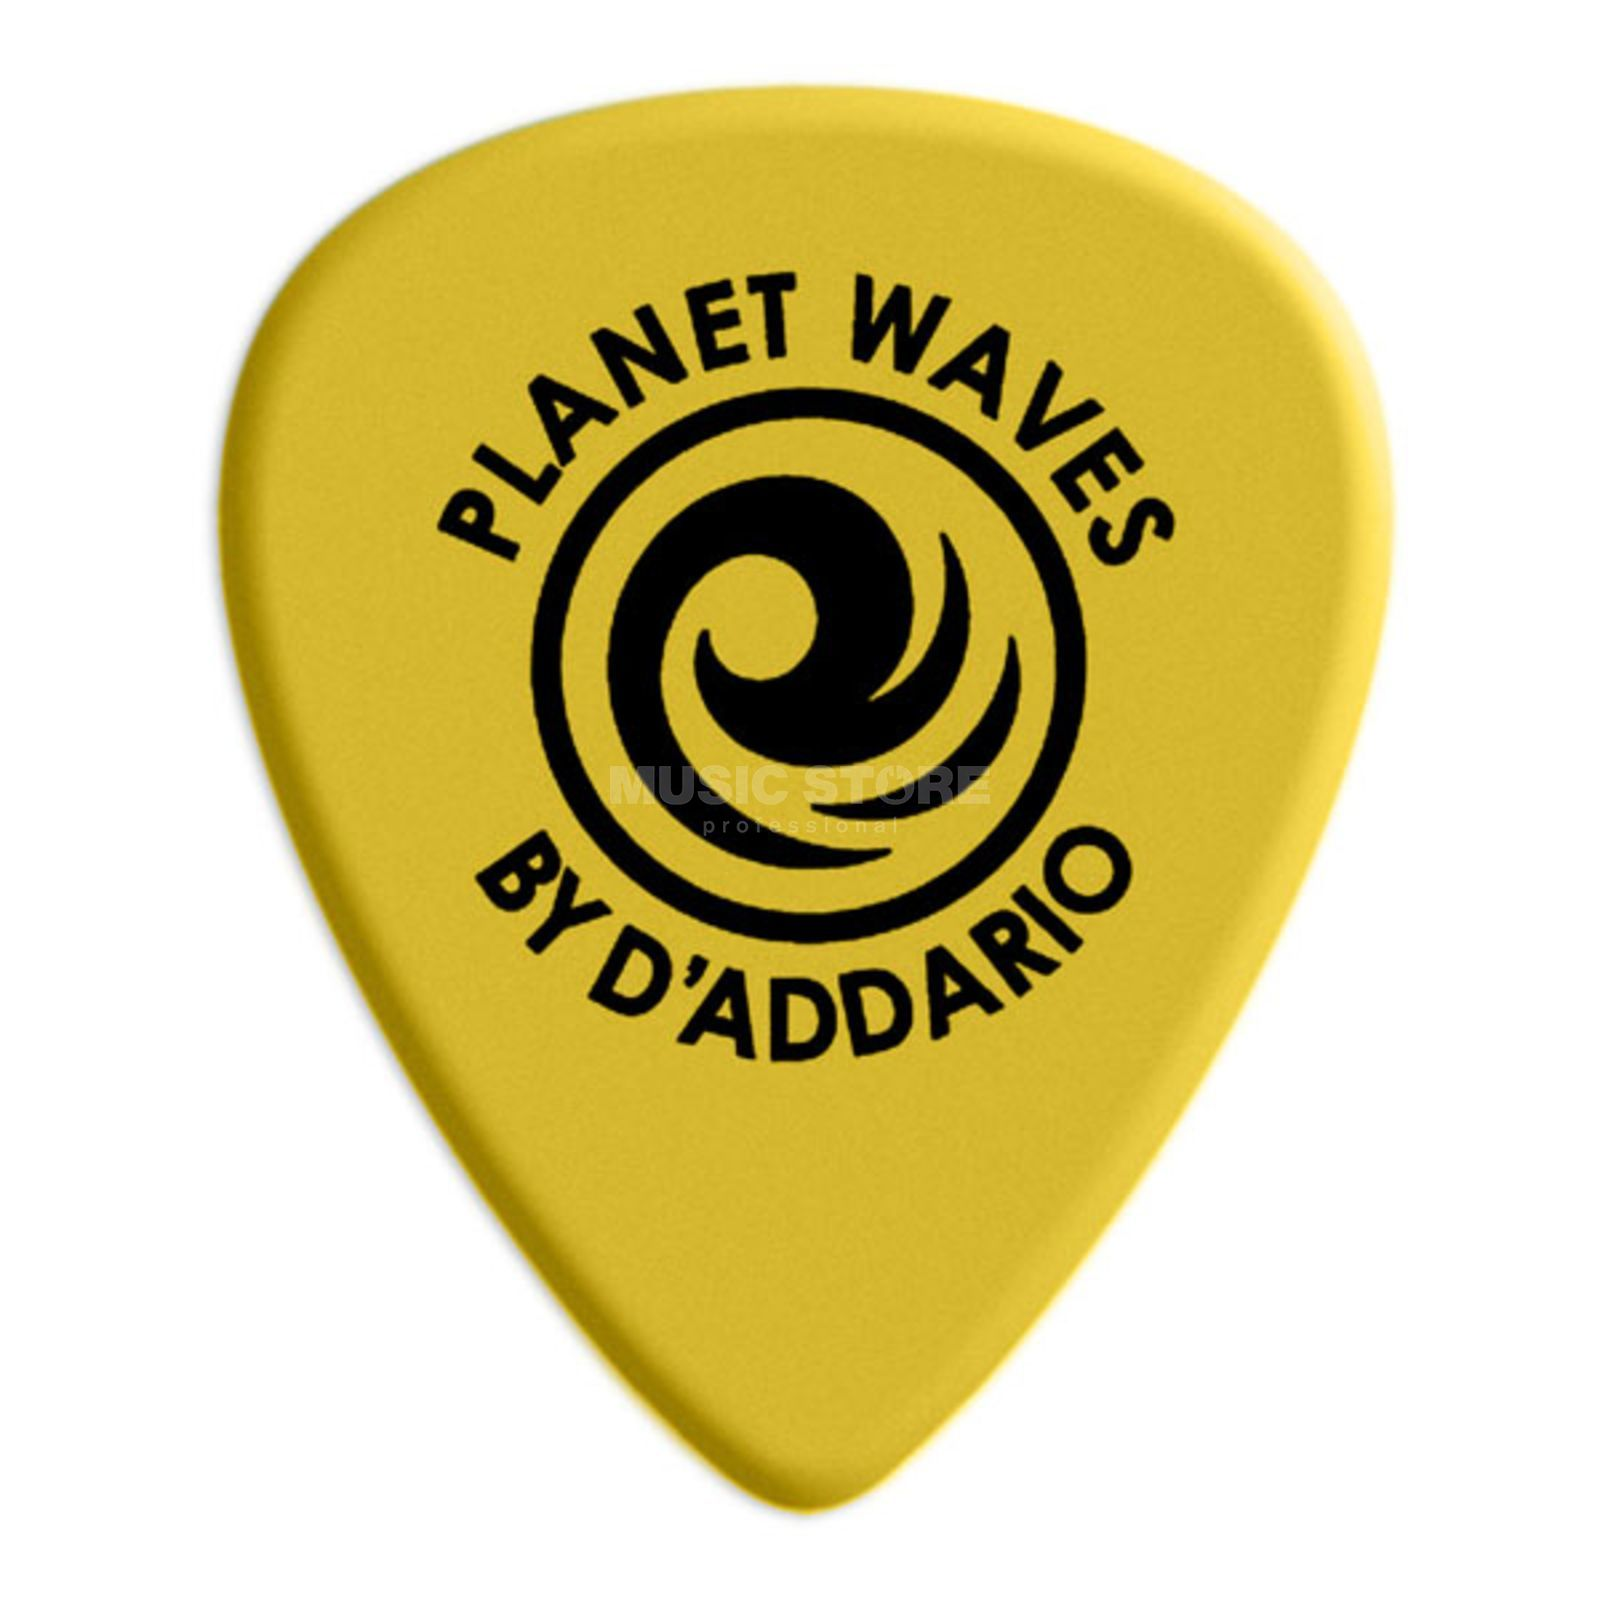 D'Addario Planet Waves Cortex Picks 0,70mm 10-Pack, 1UCT4-10 Product Image